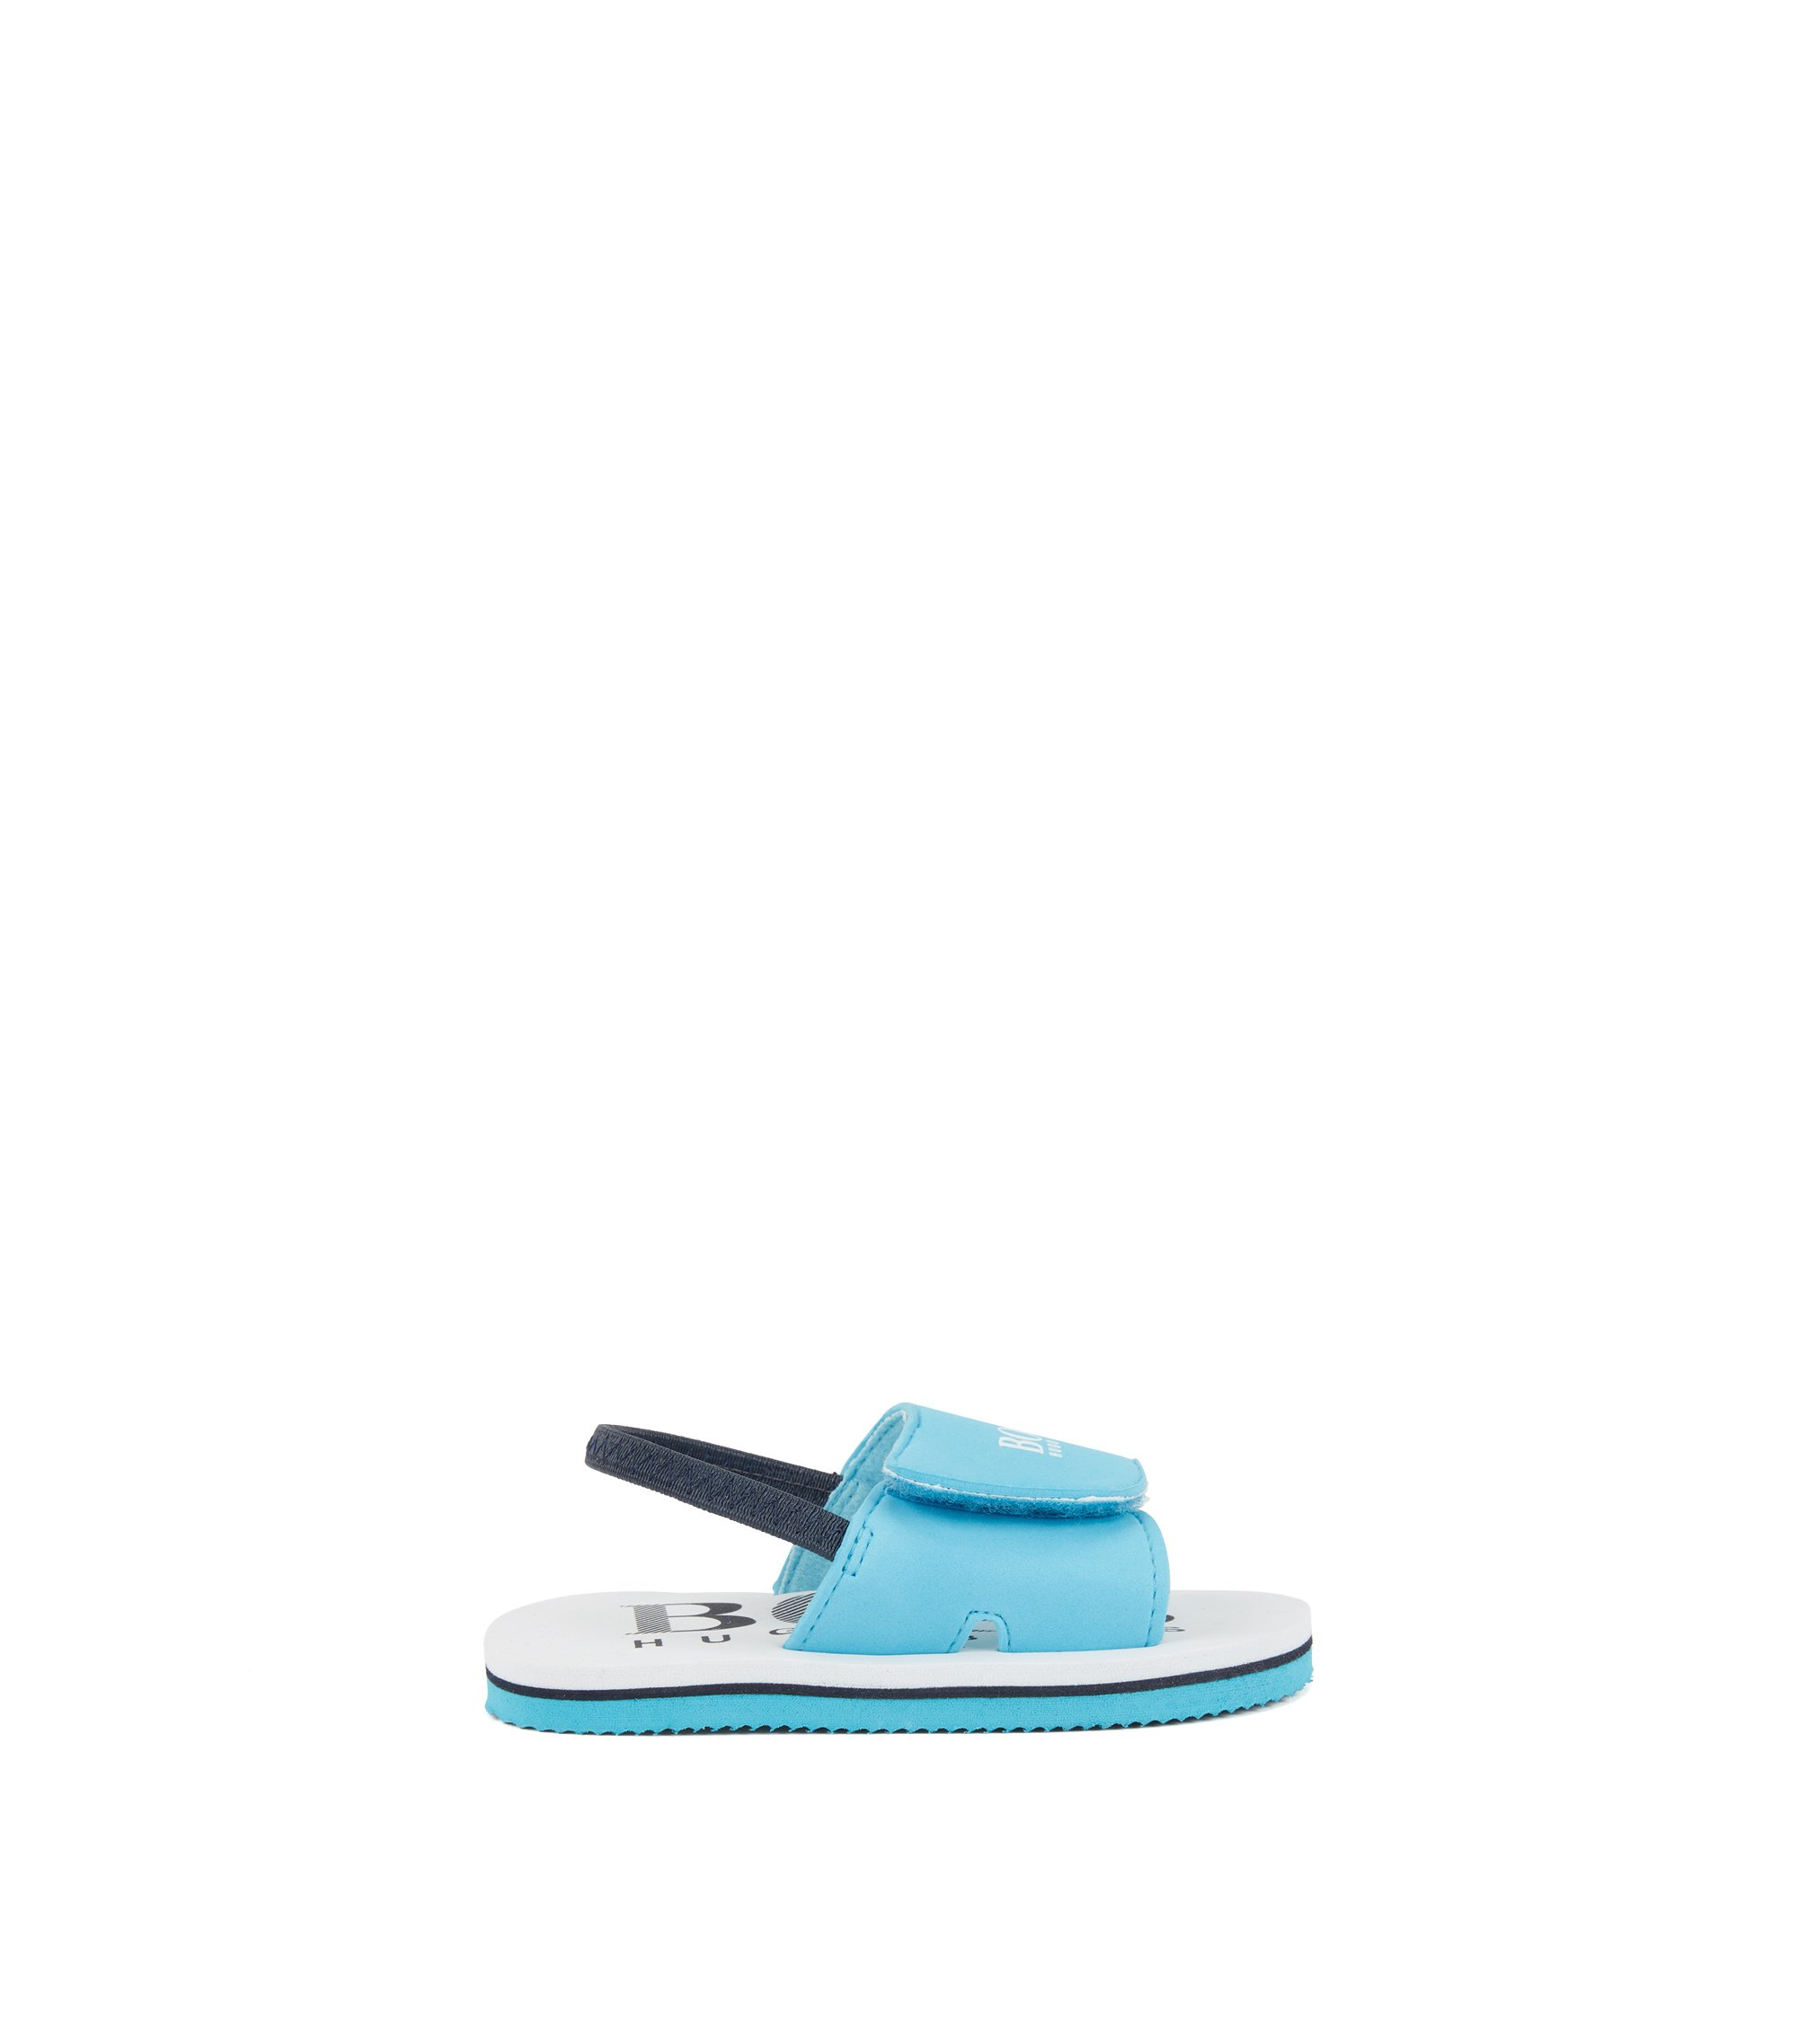 Kids' logo-print sandals with touch fastening, Light Blue